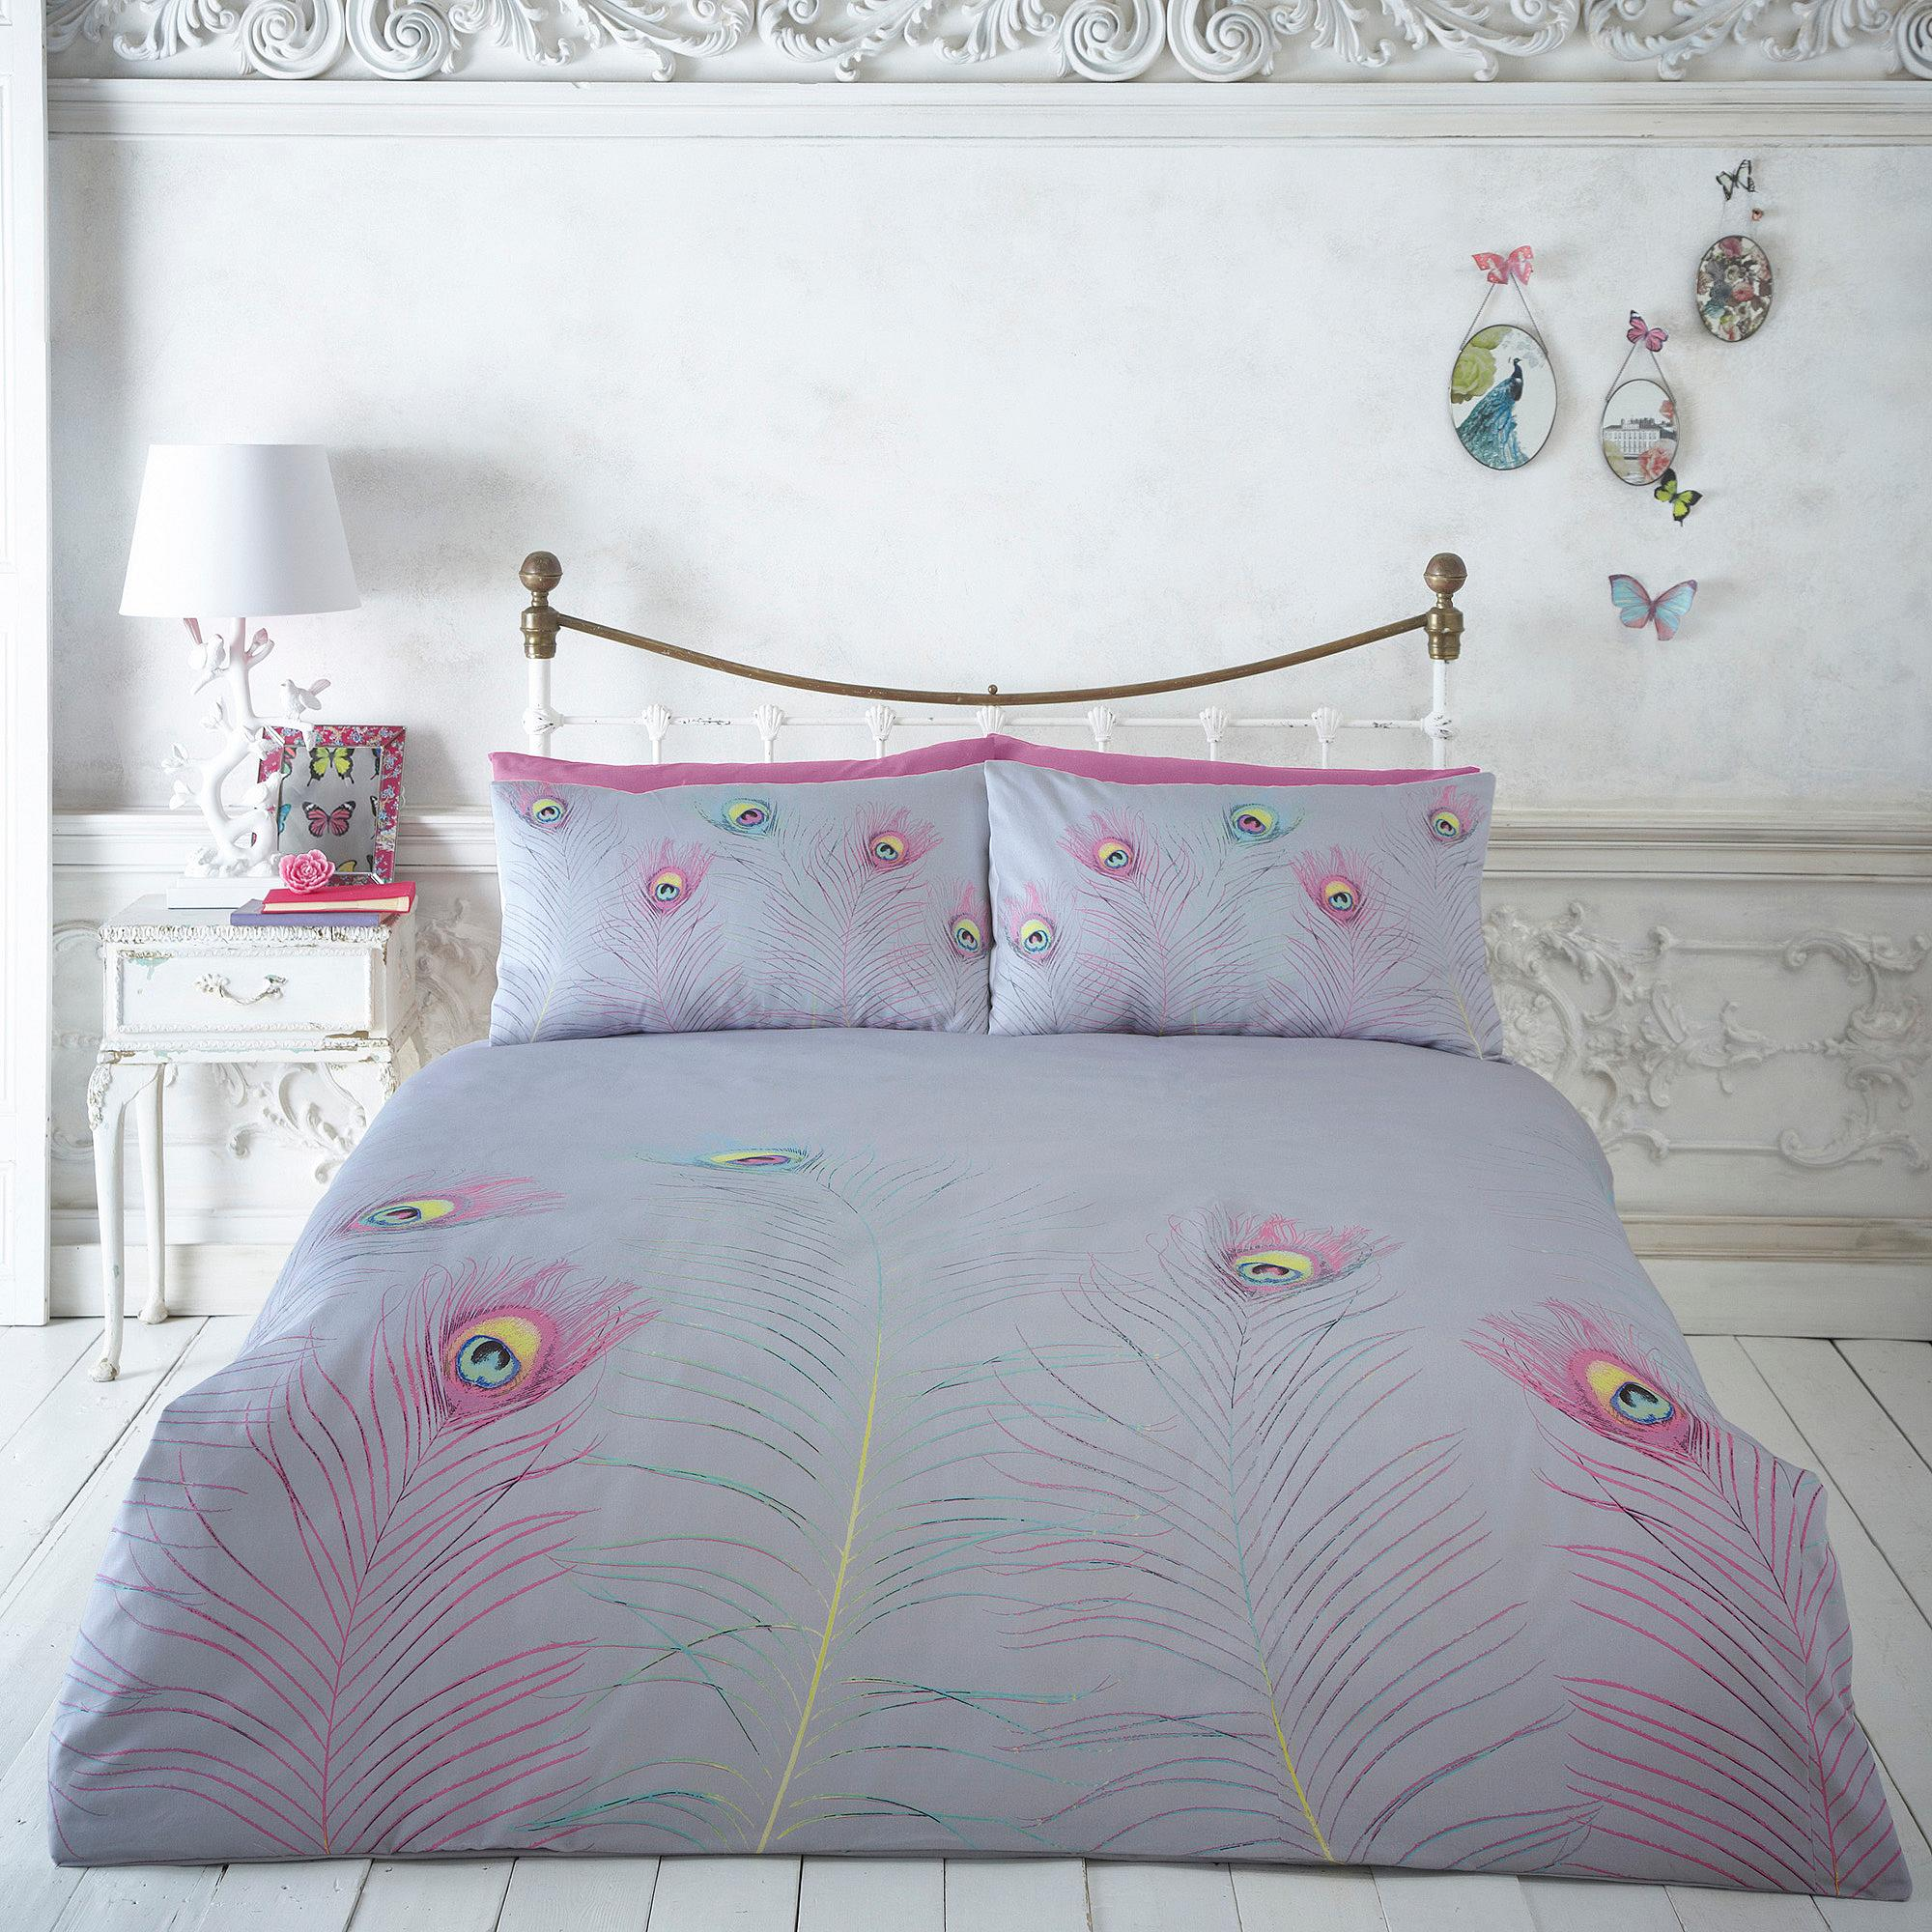 Extraordinary featherbedding for bedroom with featherbedding definition